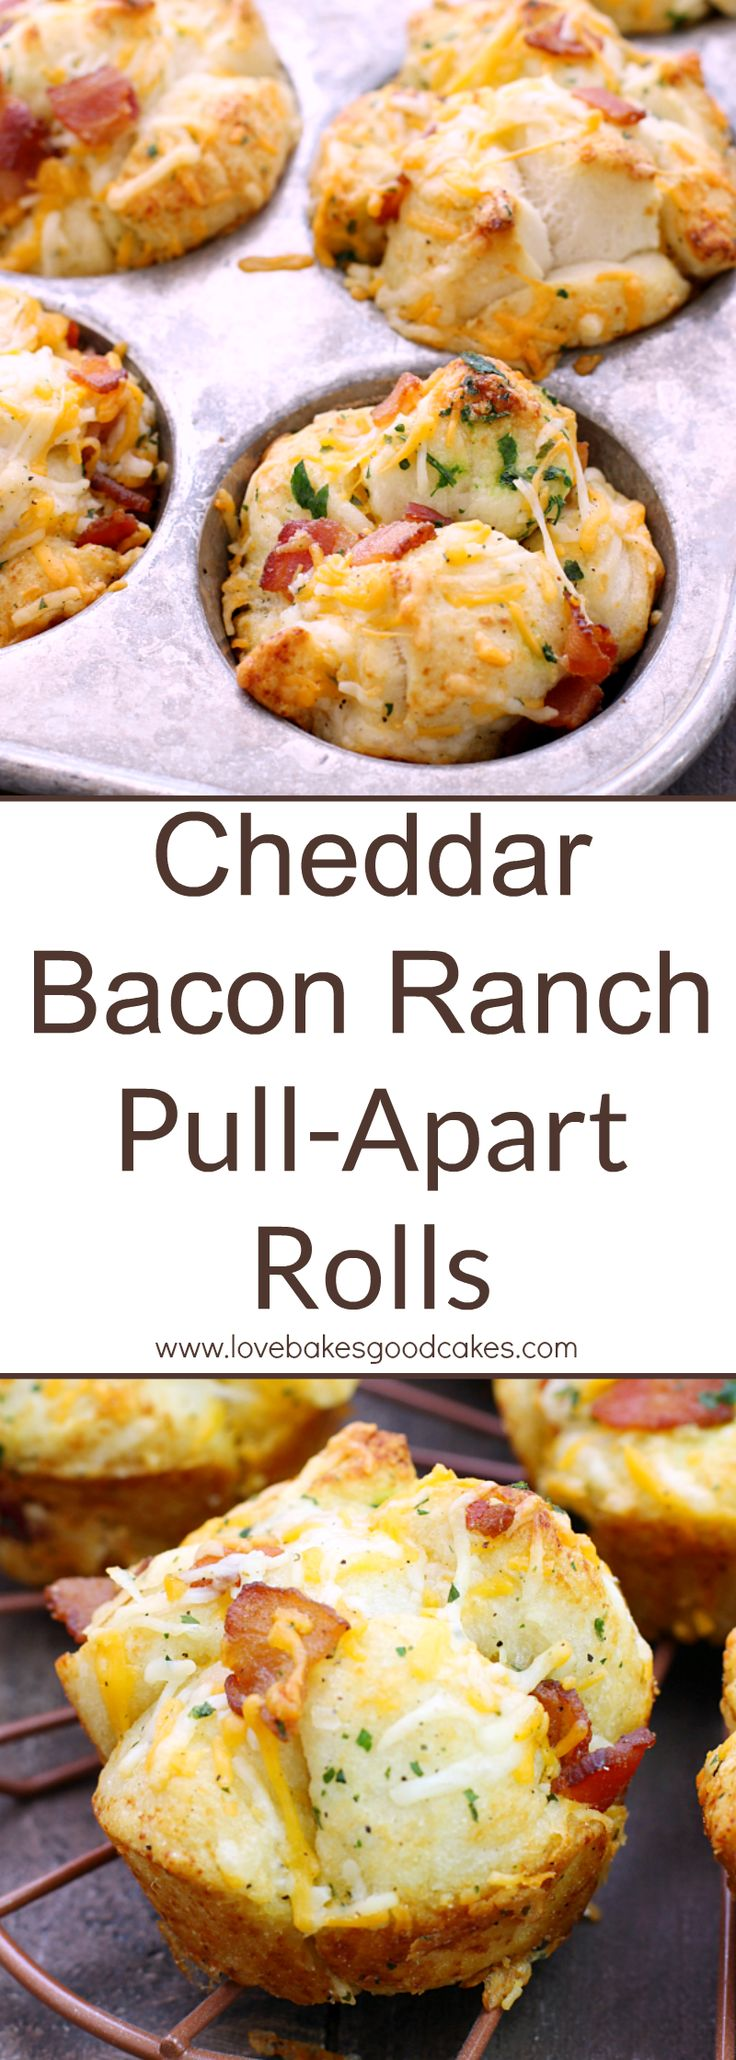 Make mealtime complete with these simple and delicious Cheddar Bacon Ranch…